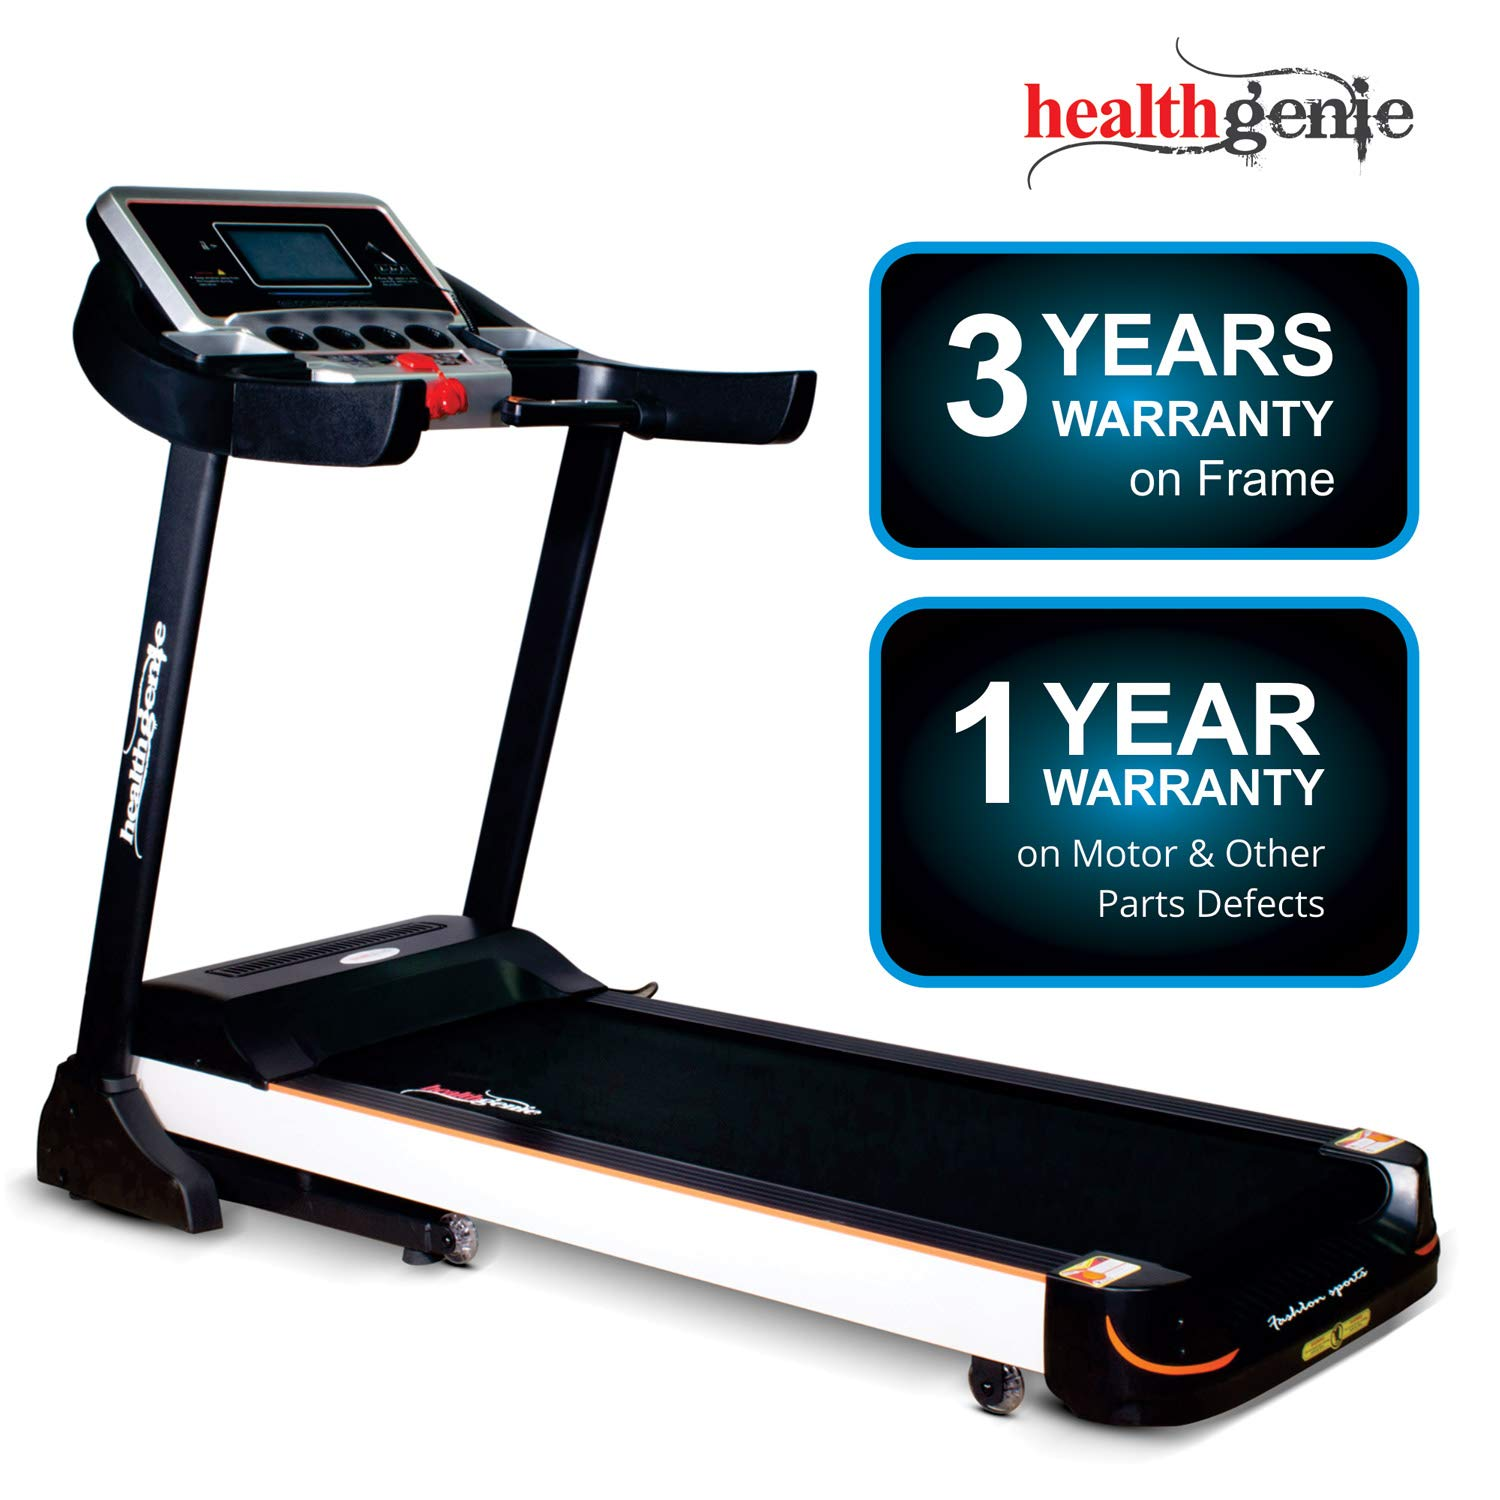 Healthgenie 4612C Commercial Motorized Treadmill For Home,